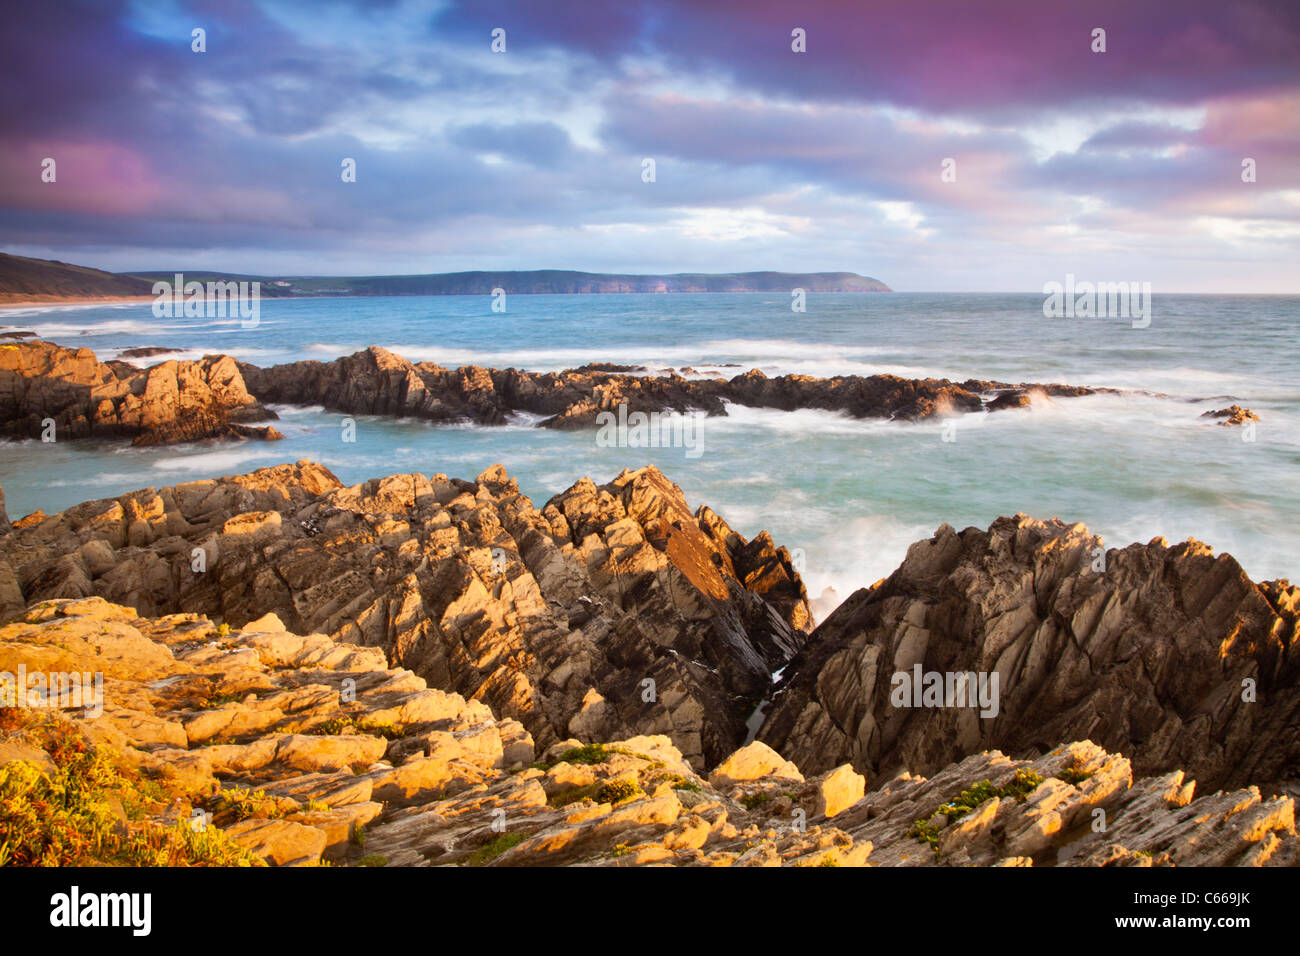 Evening light falls on the rocks of Barricane Beach, Woolacombe,looking towards Baggy Point, North Devon, England, - Stock Image